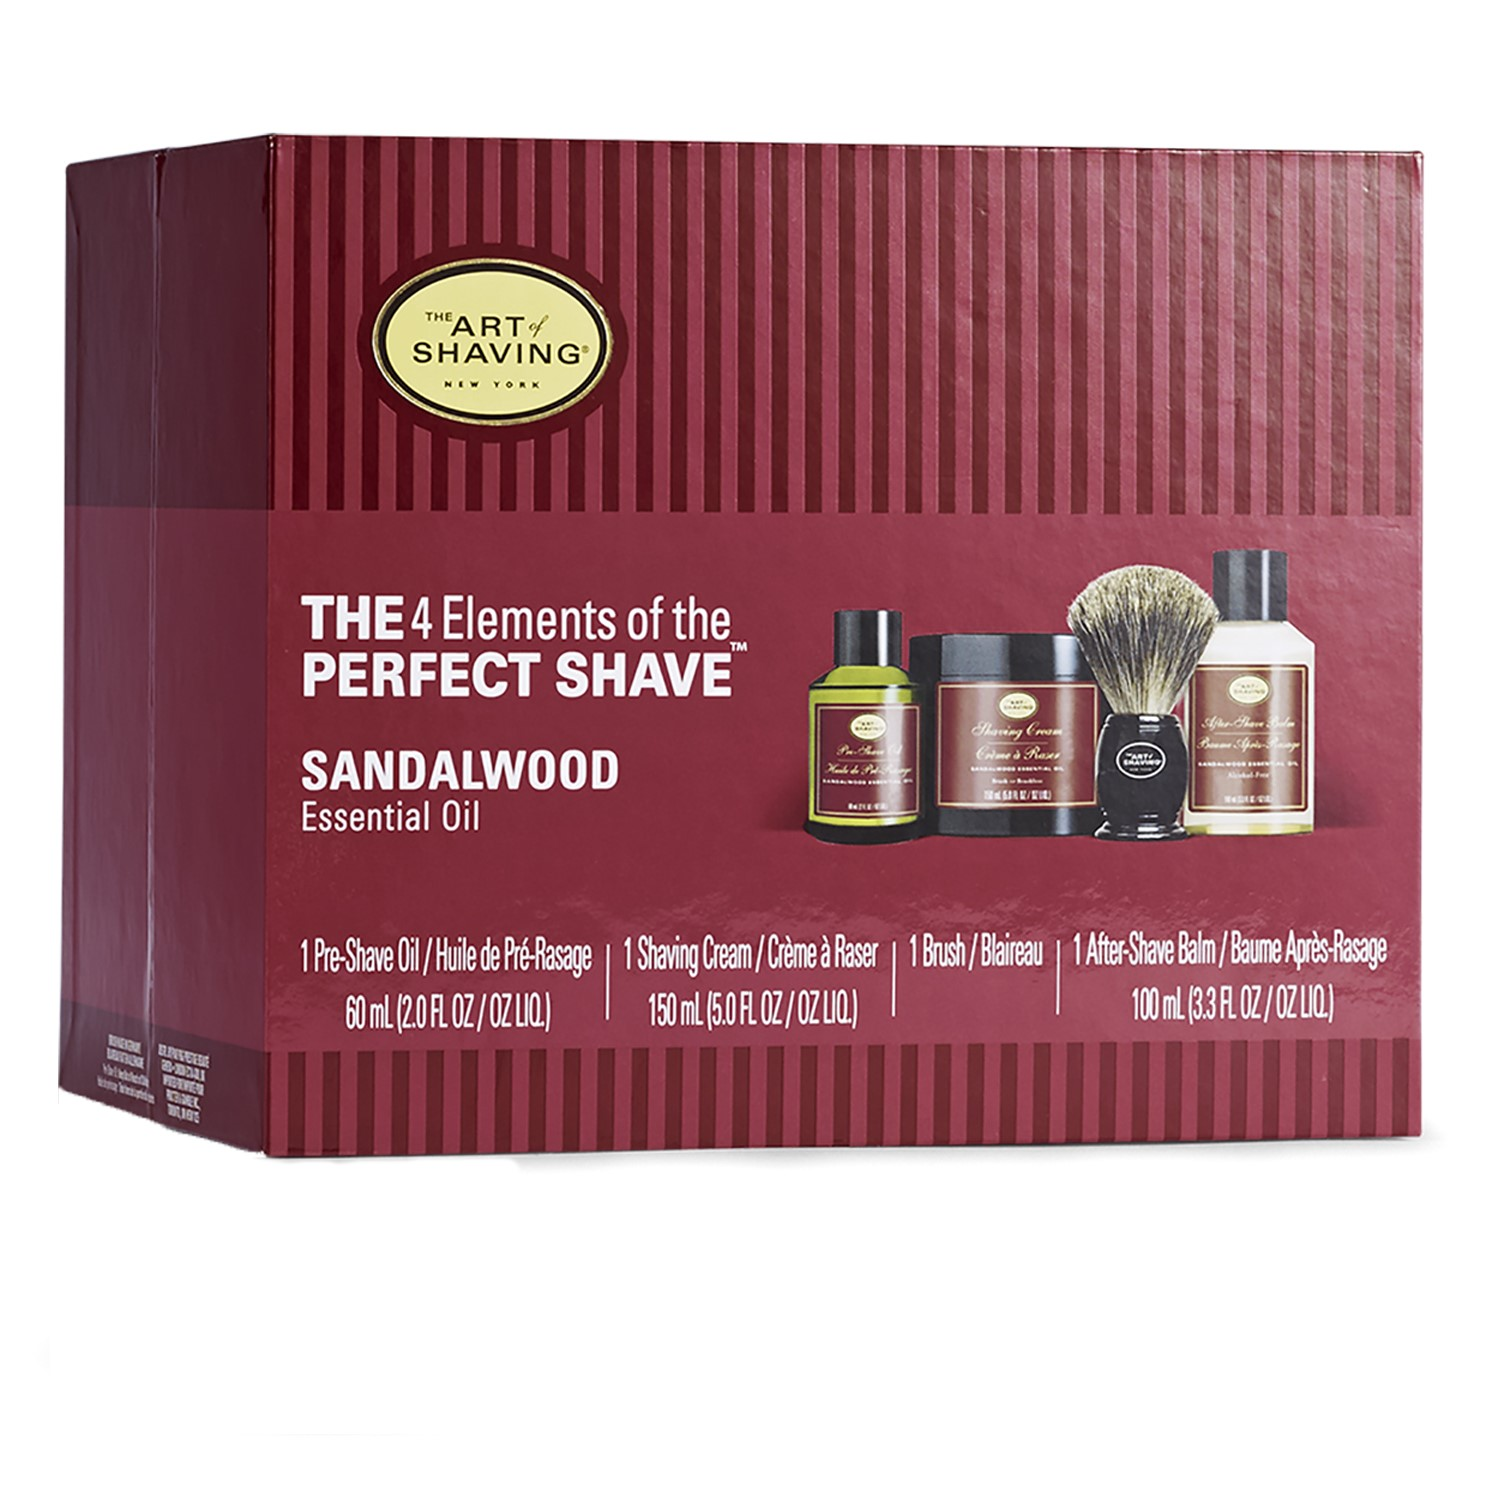 The Art of Shaving 4 Elements of the Perfect Shave Kit, Sandalwood